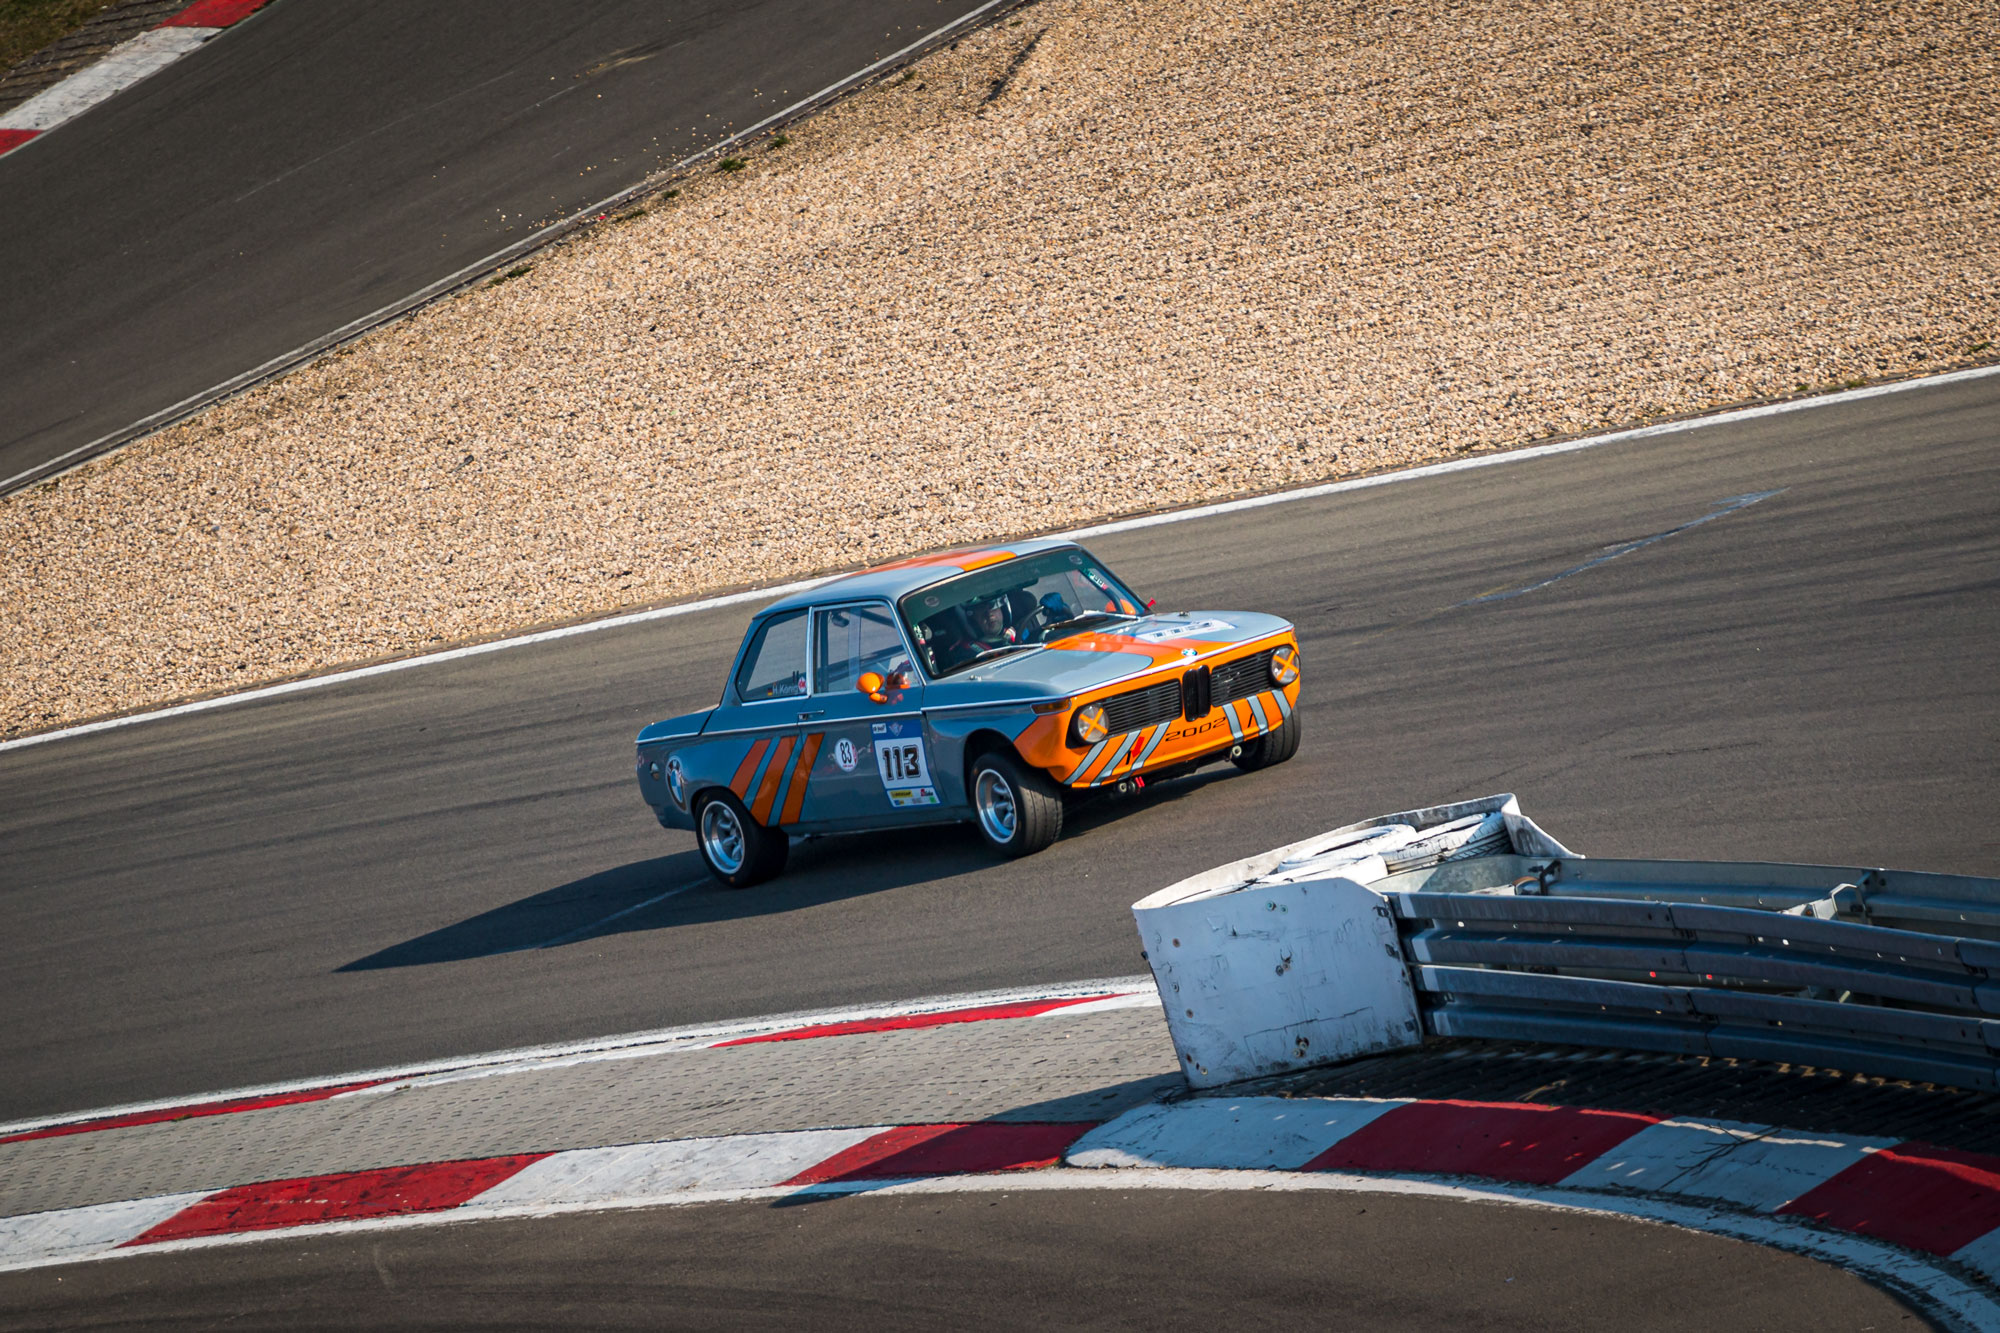 BMW 2002 - Nürburgring Grand-Prix Strecke (31.03.2019)